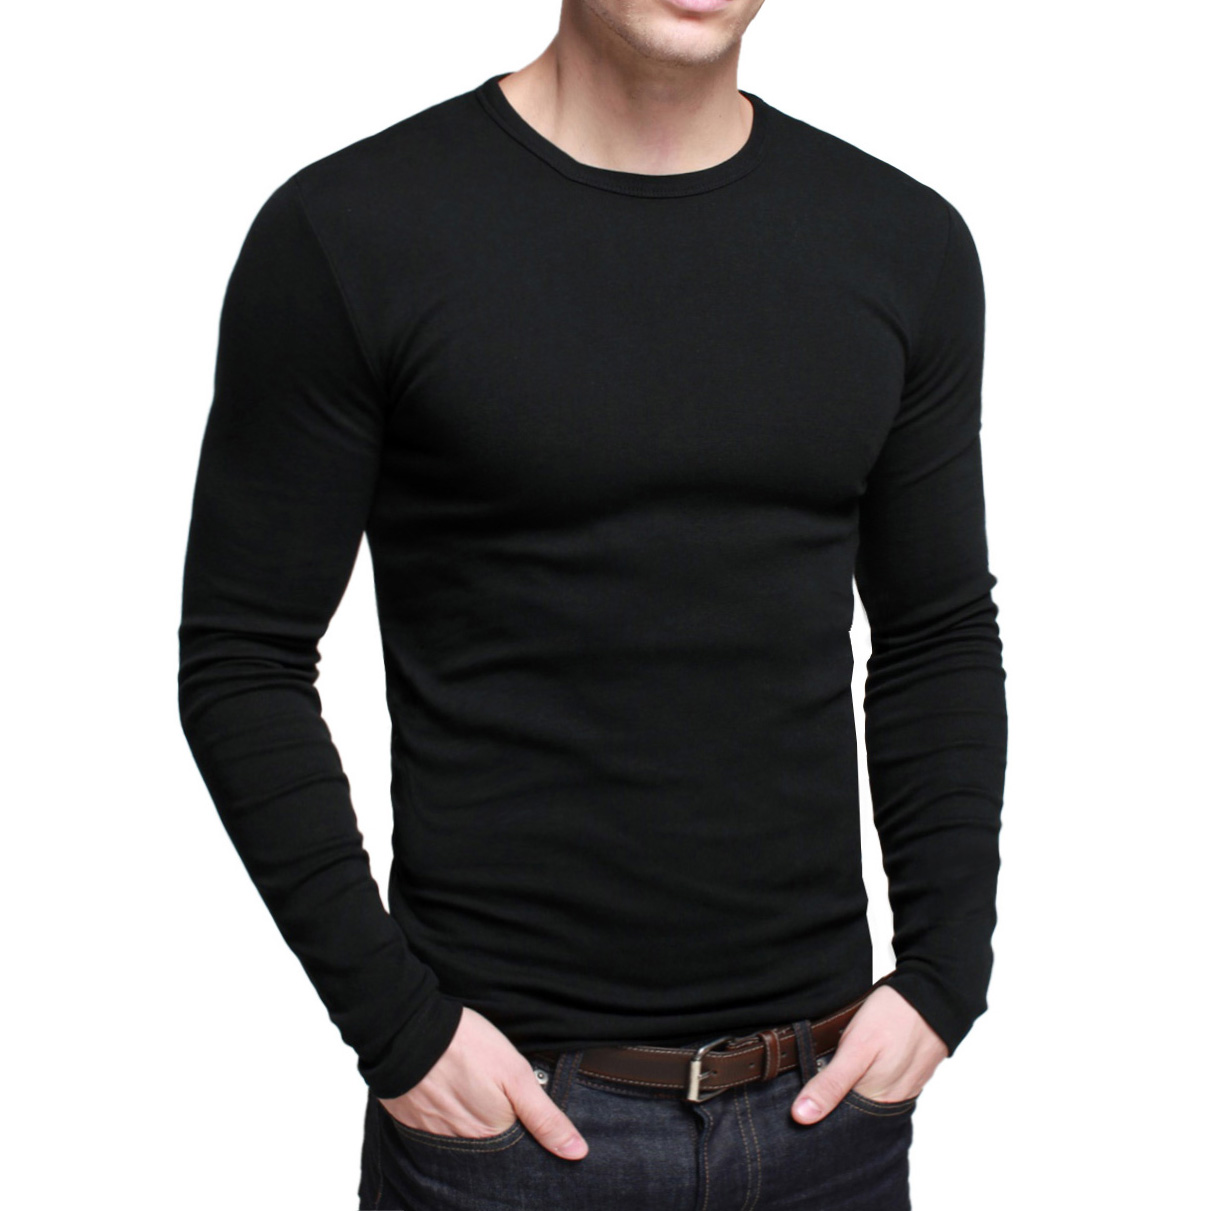 Are you looking for mens long sleeves cheap casual style online? distrib-ah3euse9.tk offers the latest high quality cool long sleeve t-shirts for men at great prices. Free shipping world wide.